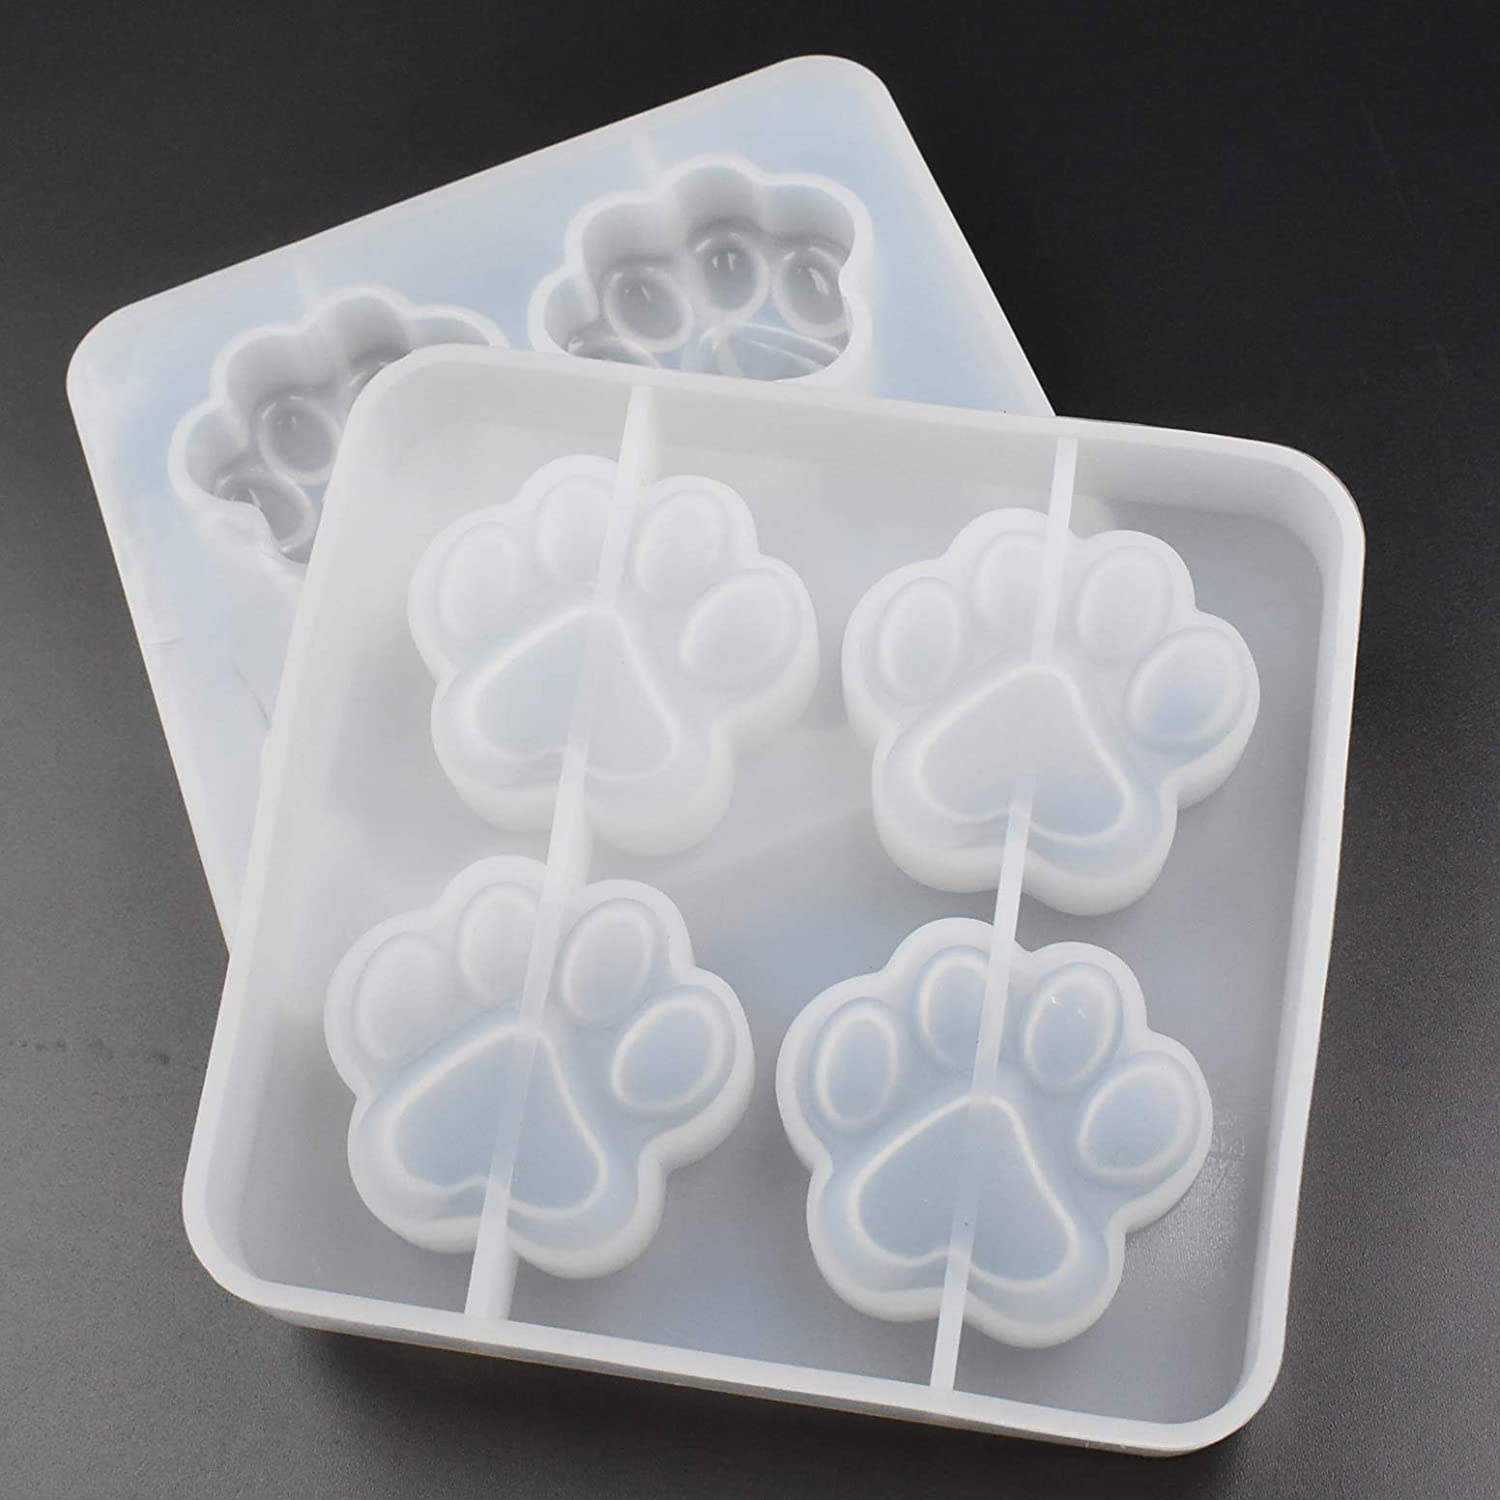 Pack of 2 Cat Paws Shape Epoxy 25% OFF Bombing new work C Resin Mold Footprint Catie Cute